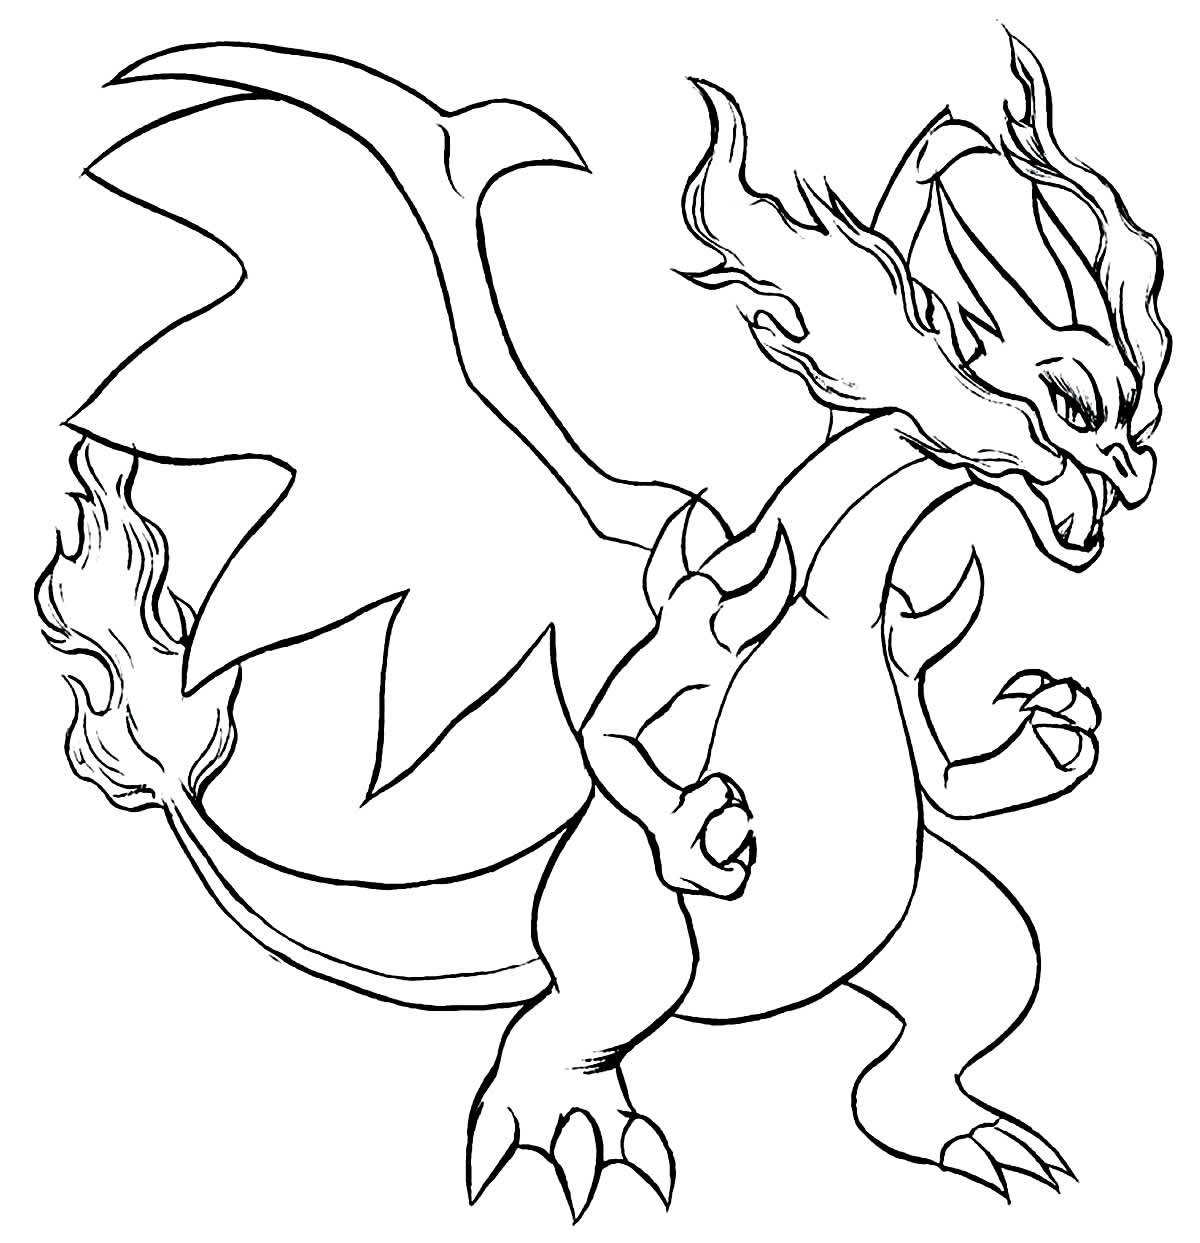 Charizard drawing for coloring